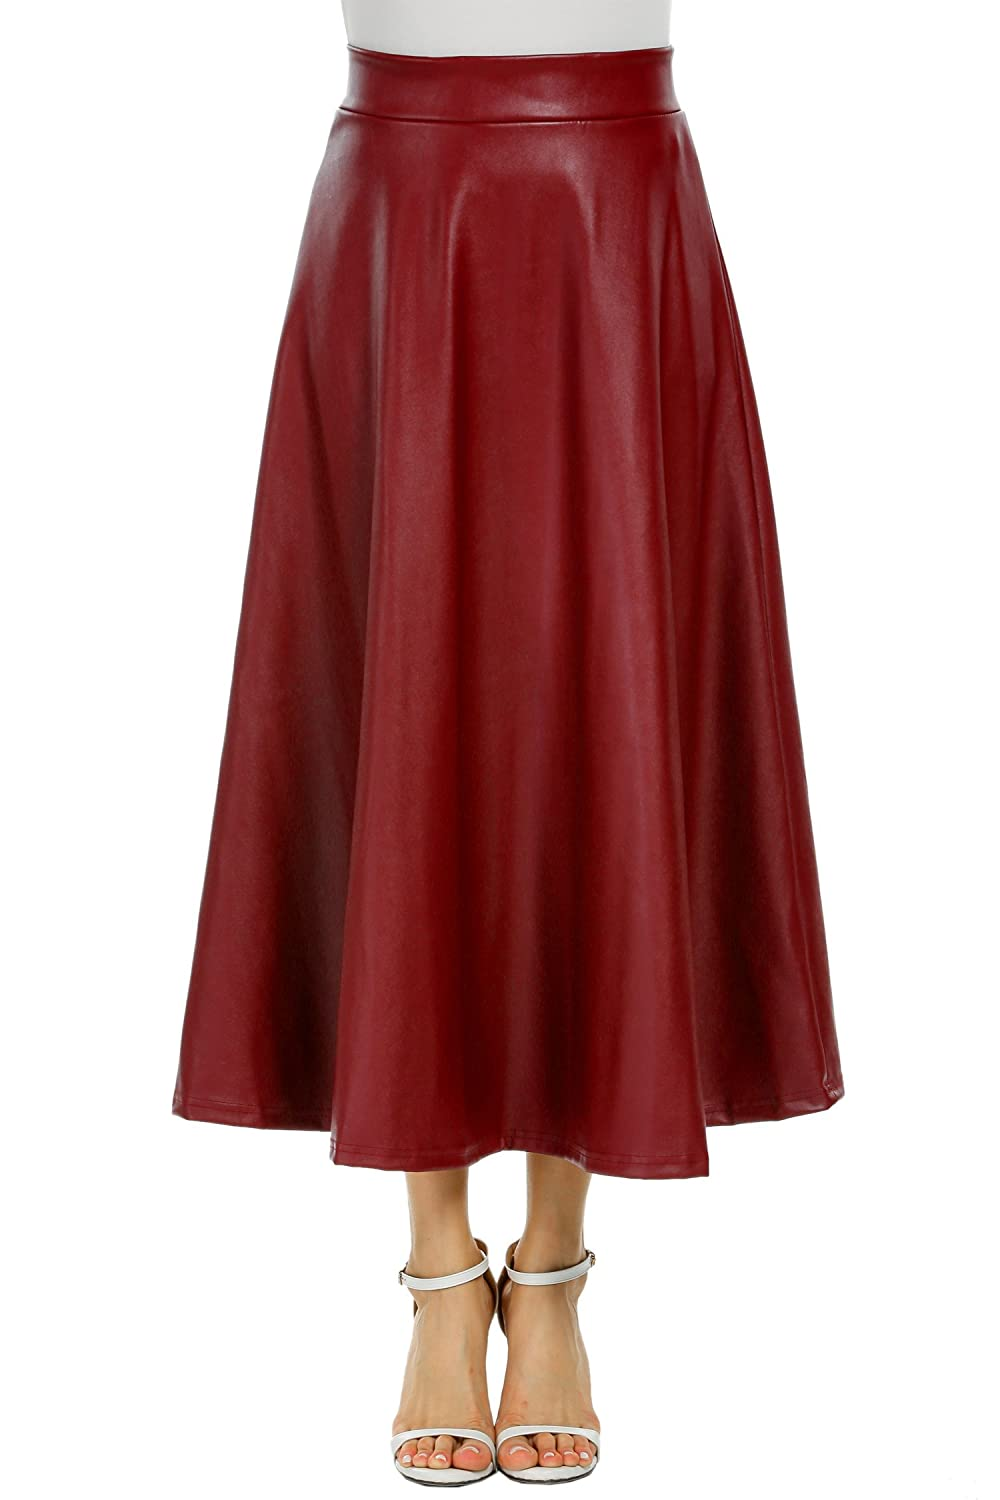 ELESOL Women's Pleated High Waist Faux Leather Skirts Swing A-Line Maxi Skirt EL002248